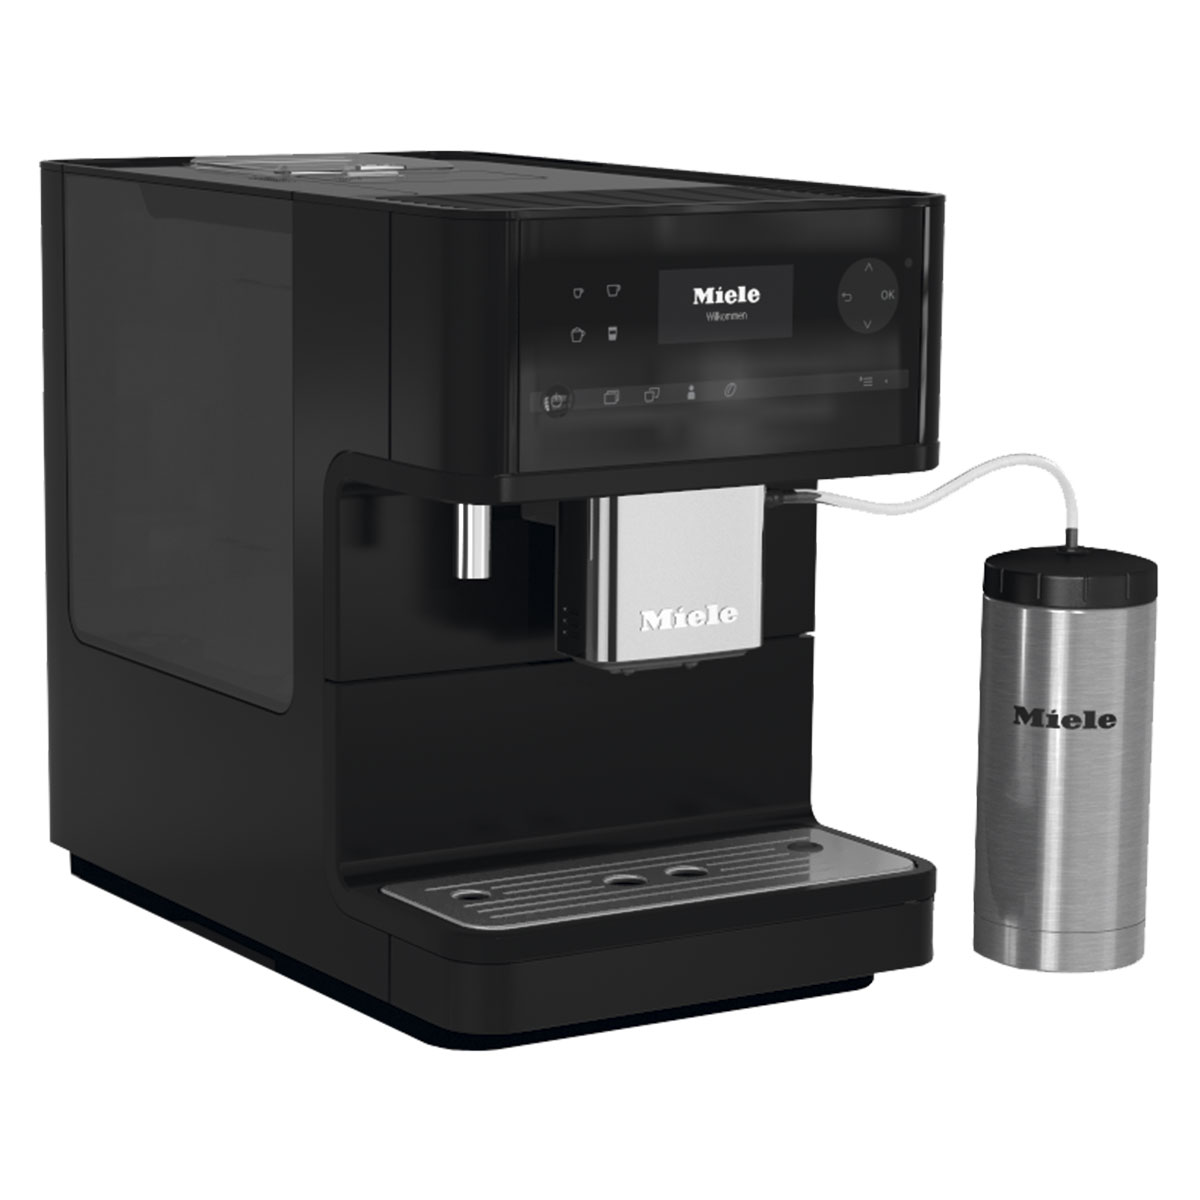 Image of   Miele espressomaskine - CM 6350 - Black Edition